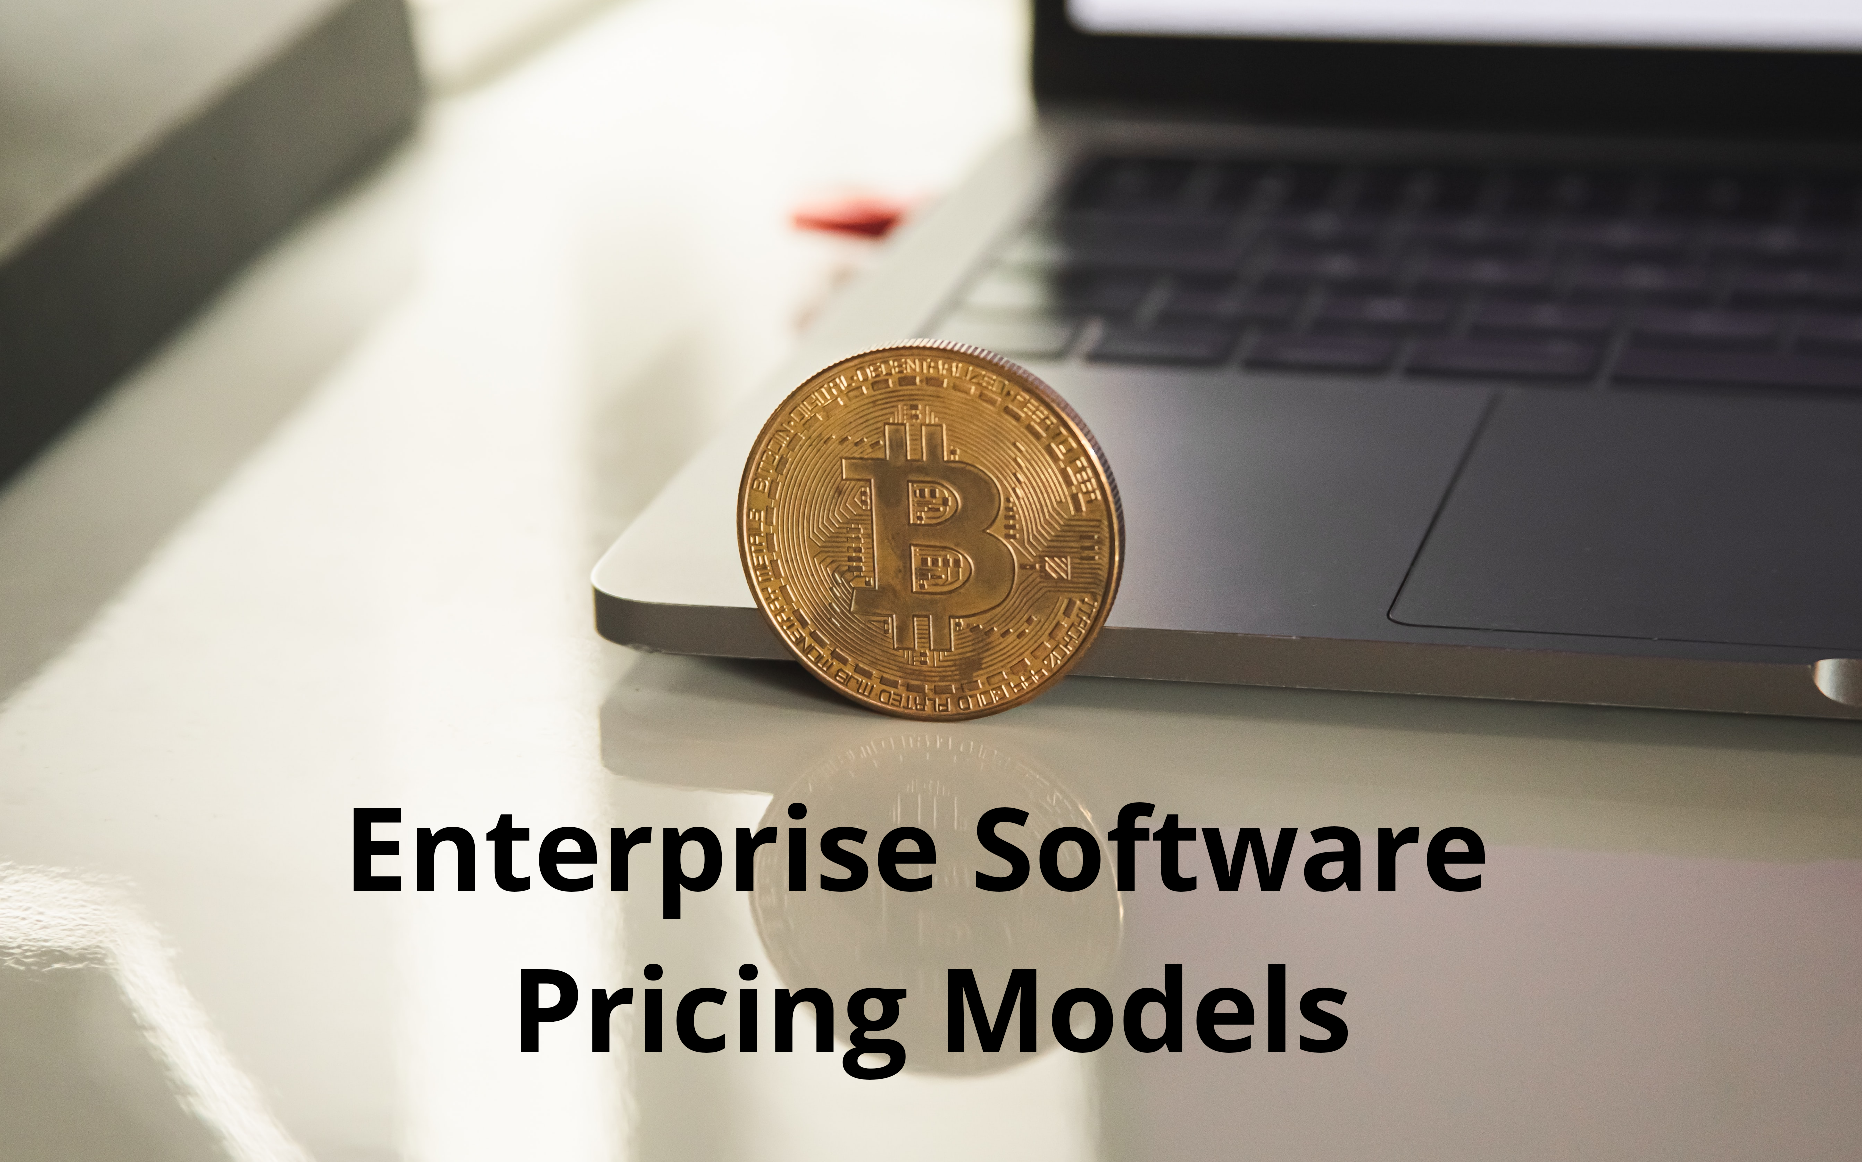 enterprise software pricing models, enterprise software pricing, enterprise software pricing strategy, enterprise software pricing examples